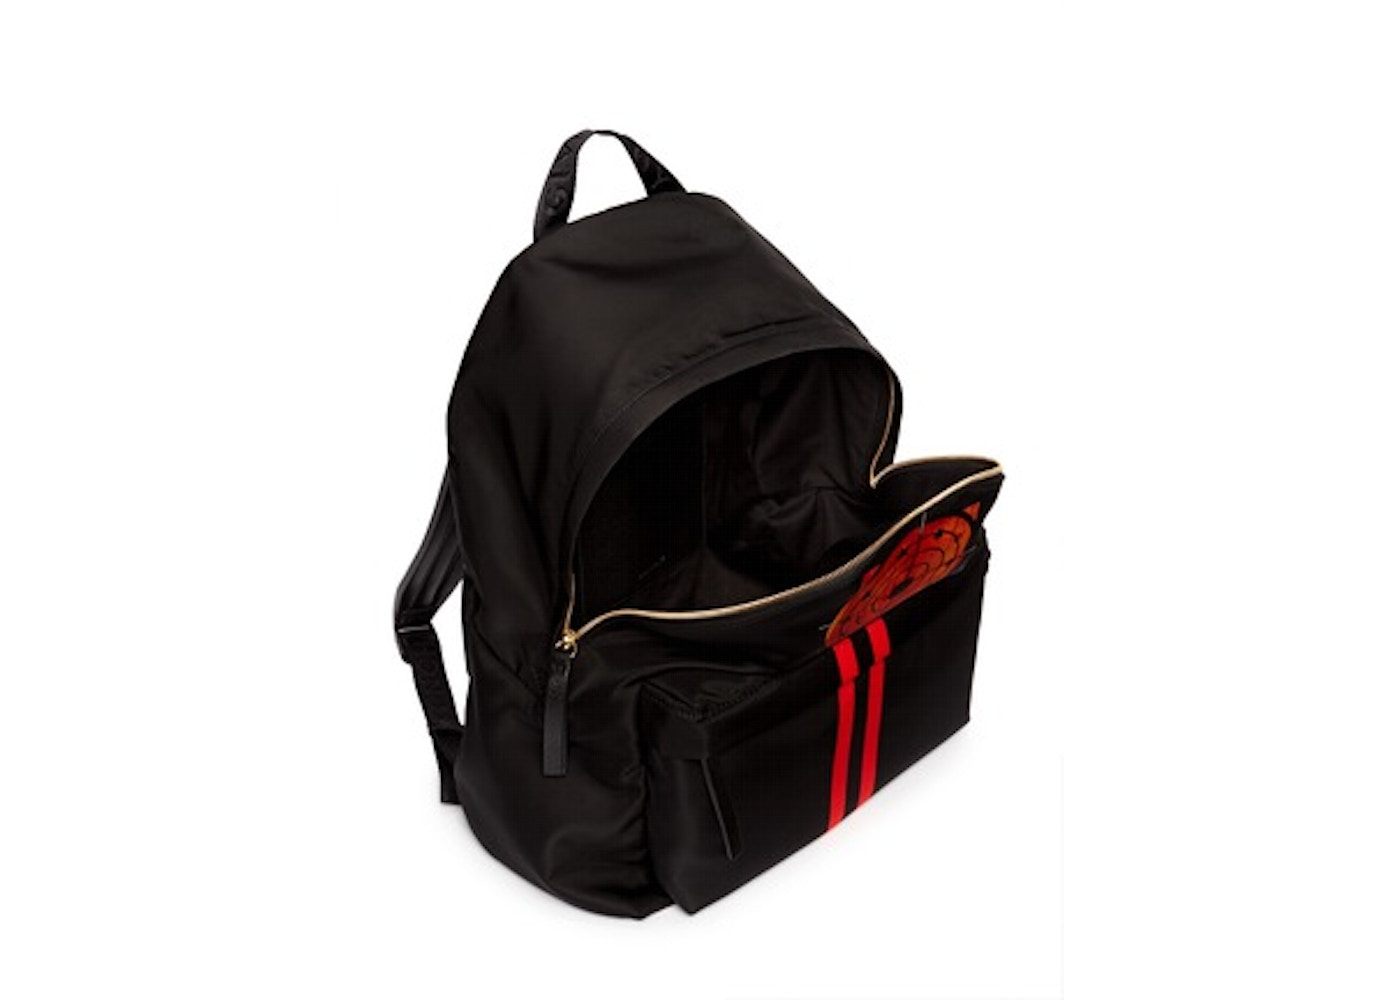 364f0f74cf92 Black Mini Backpack Target- Fenix Toulouse Handball